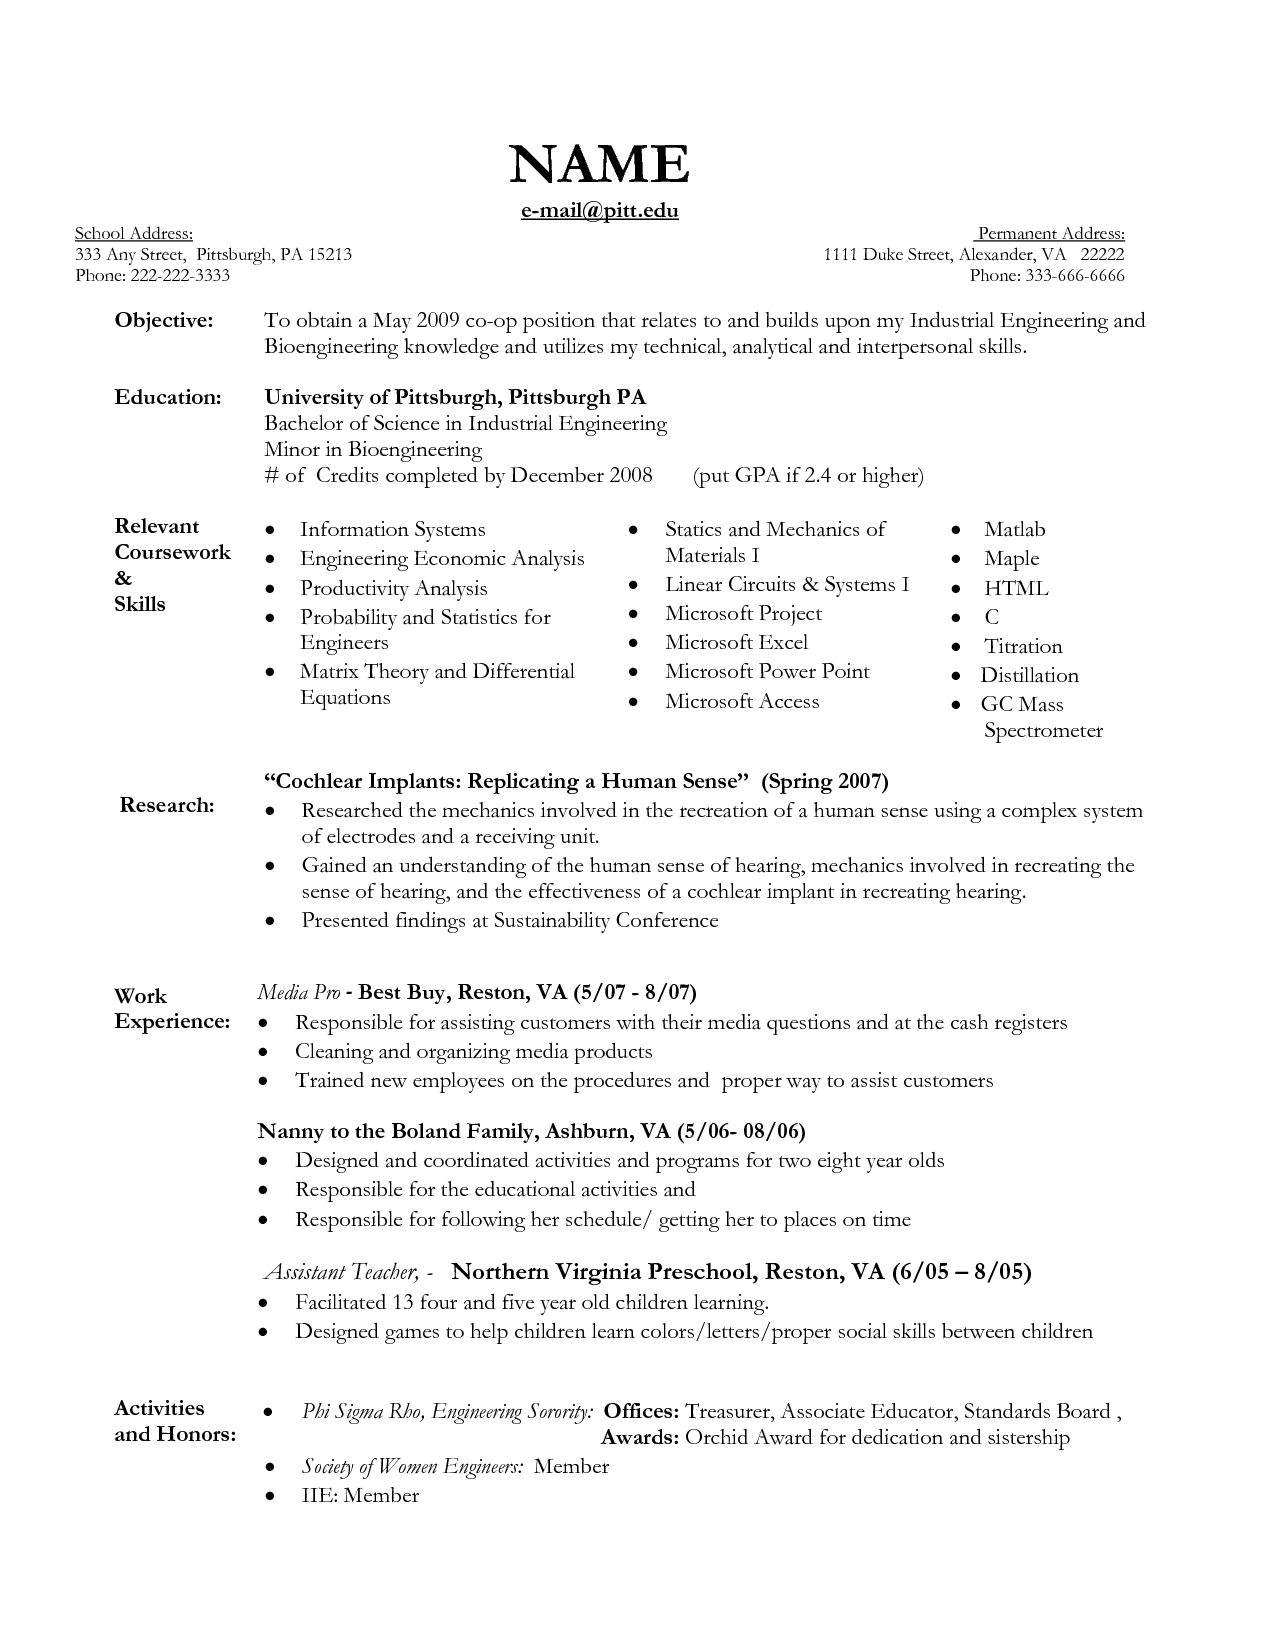 Sample Nanny Resume How To Write Coursework  Course Work  Pinterest